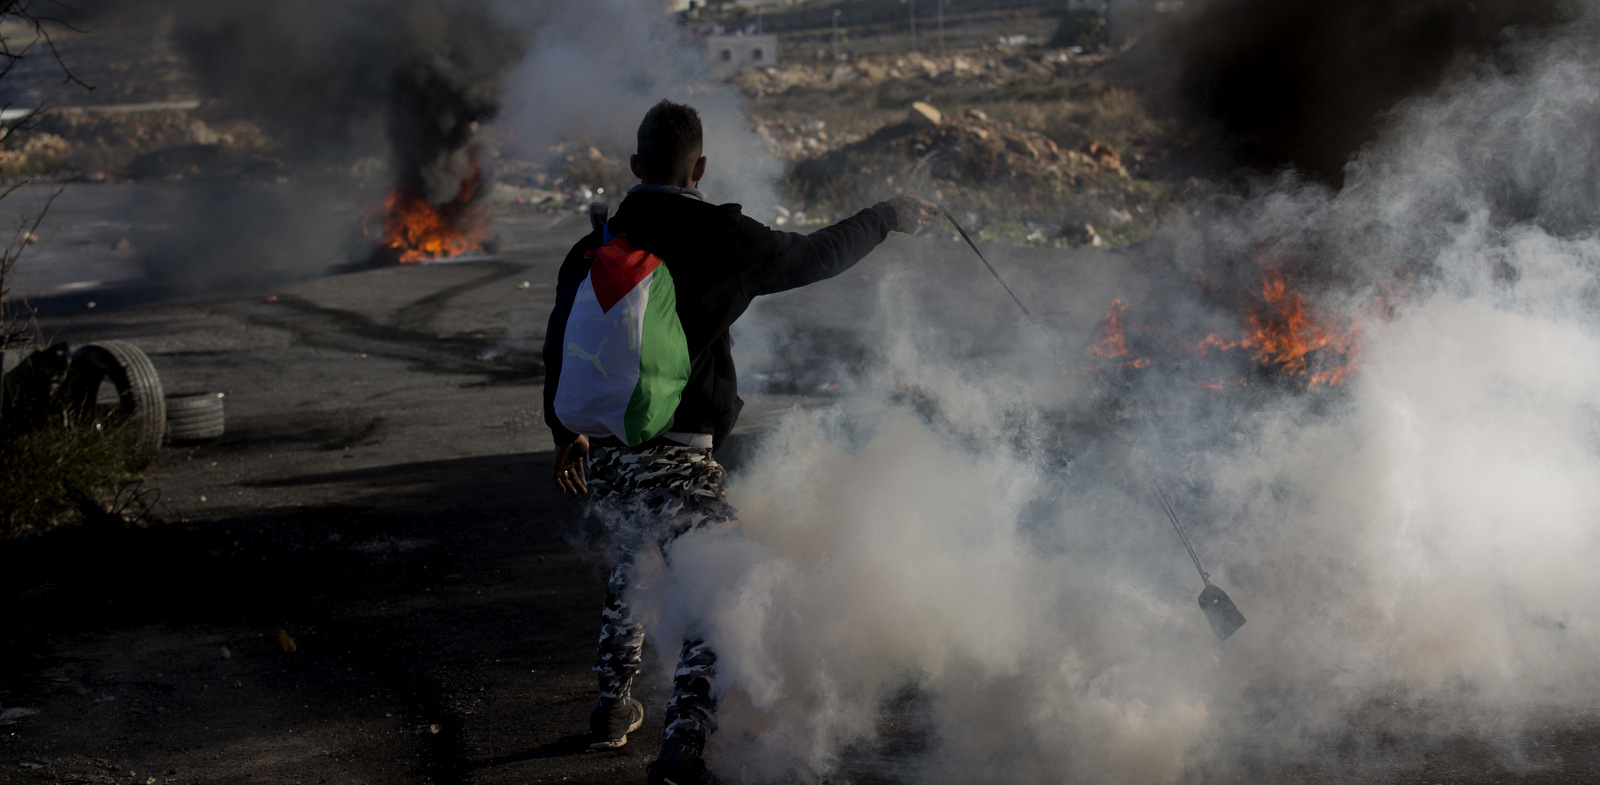 Israeli Drones Tear-Gas Gaza Protesters in Latest Unmanned Weapons 'Experiment'